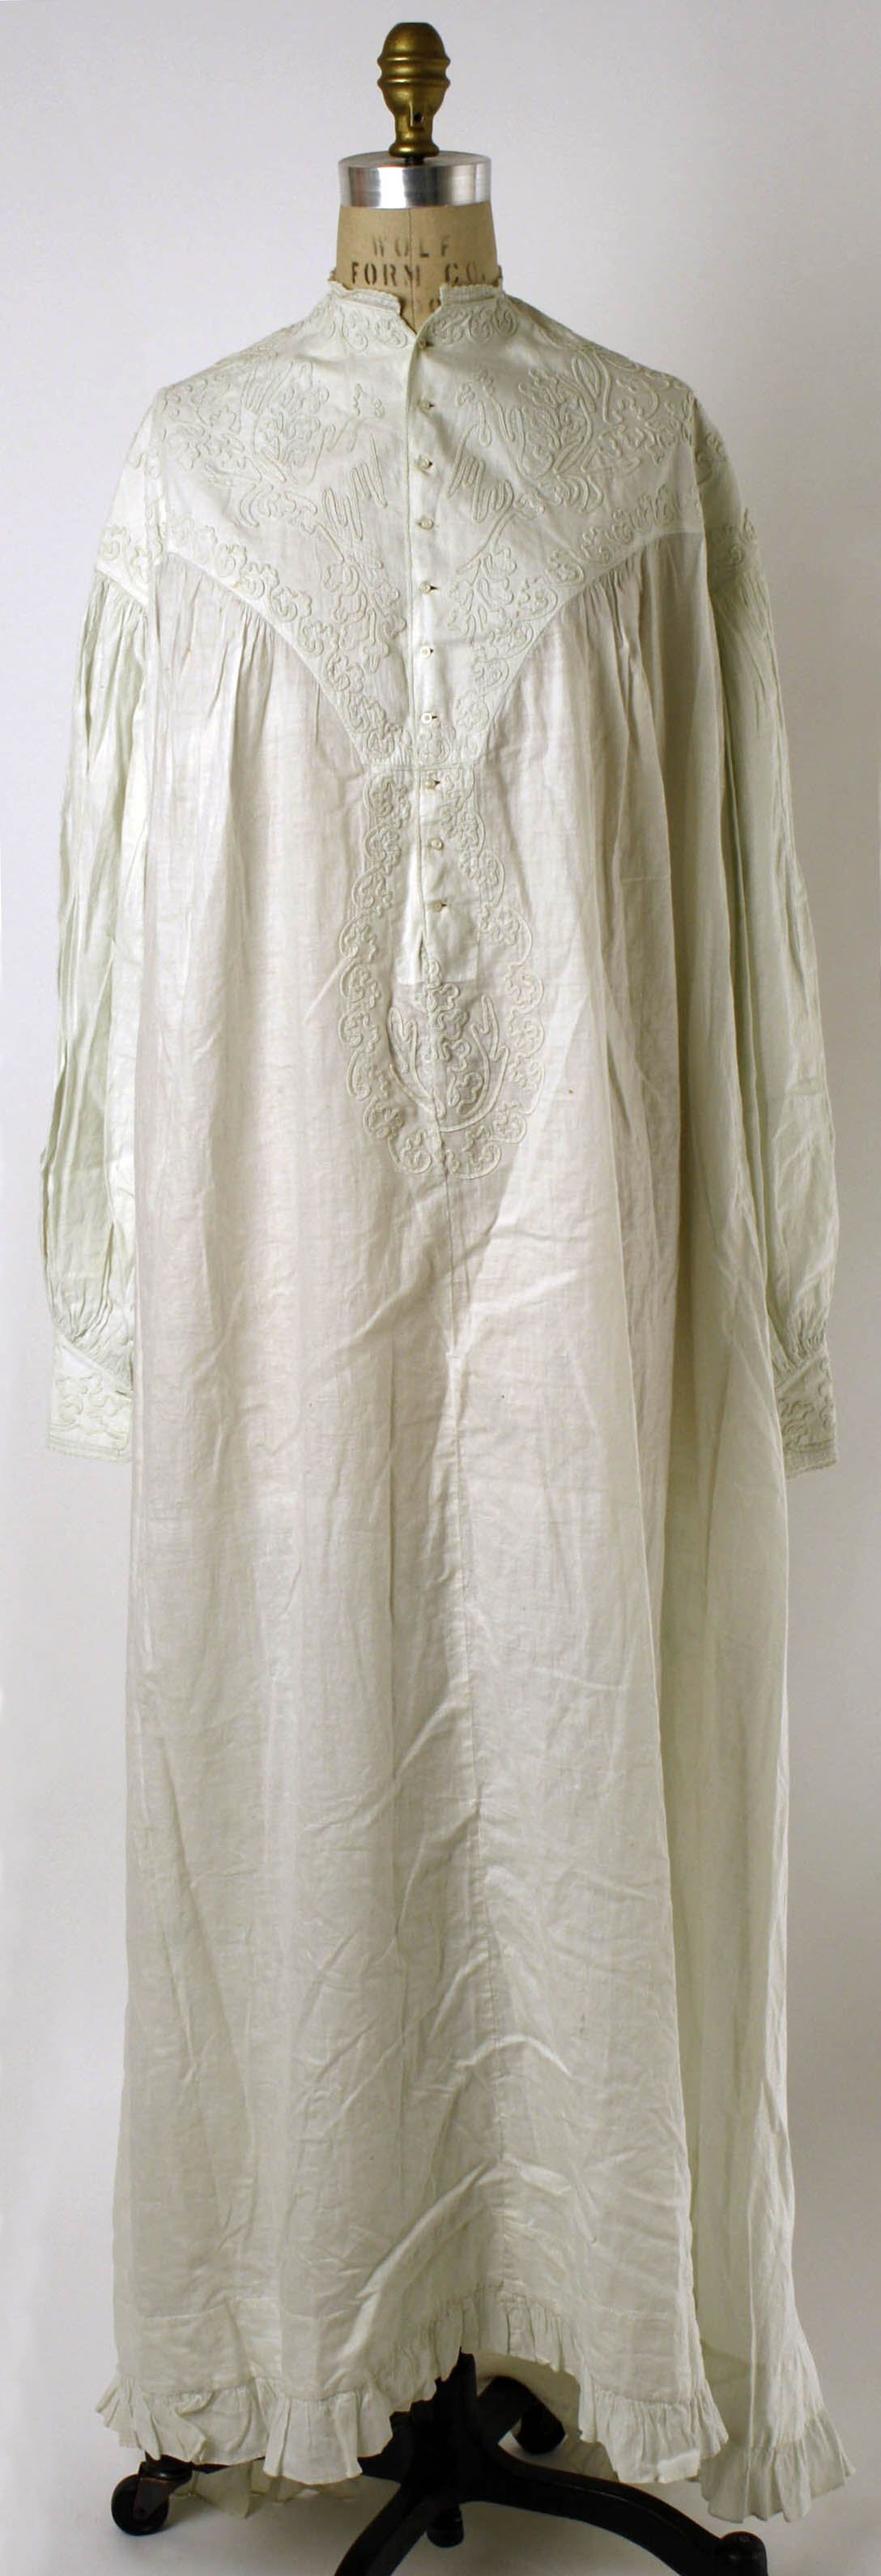 Nightgown   French   1860s   Fine Lace, Silk and Lingerie...